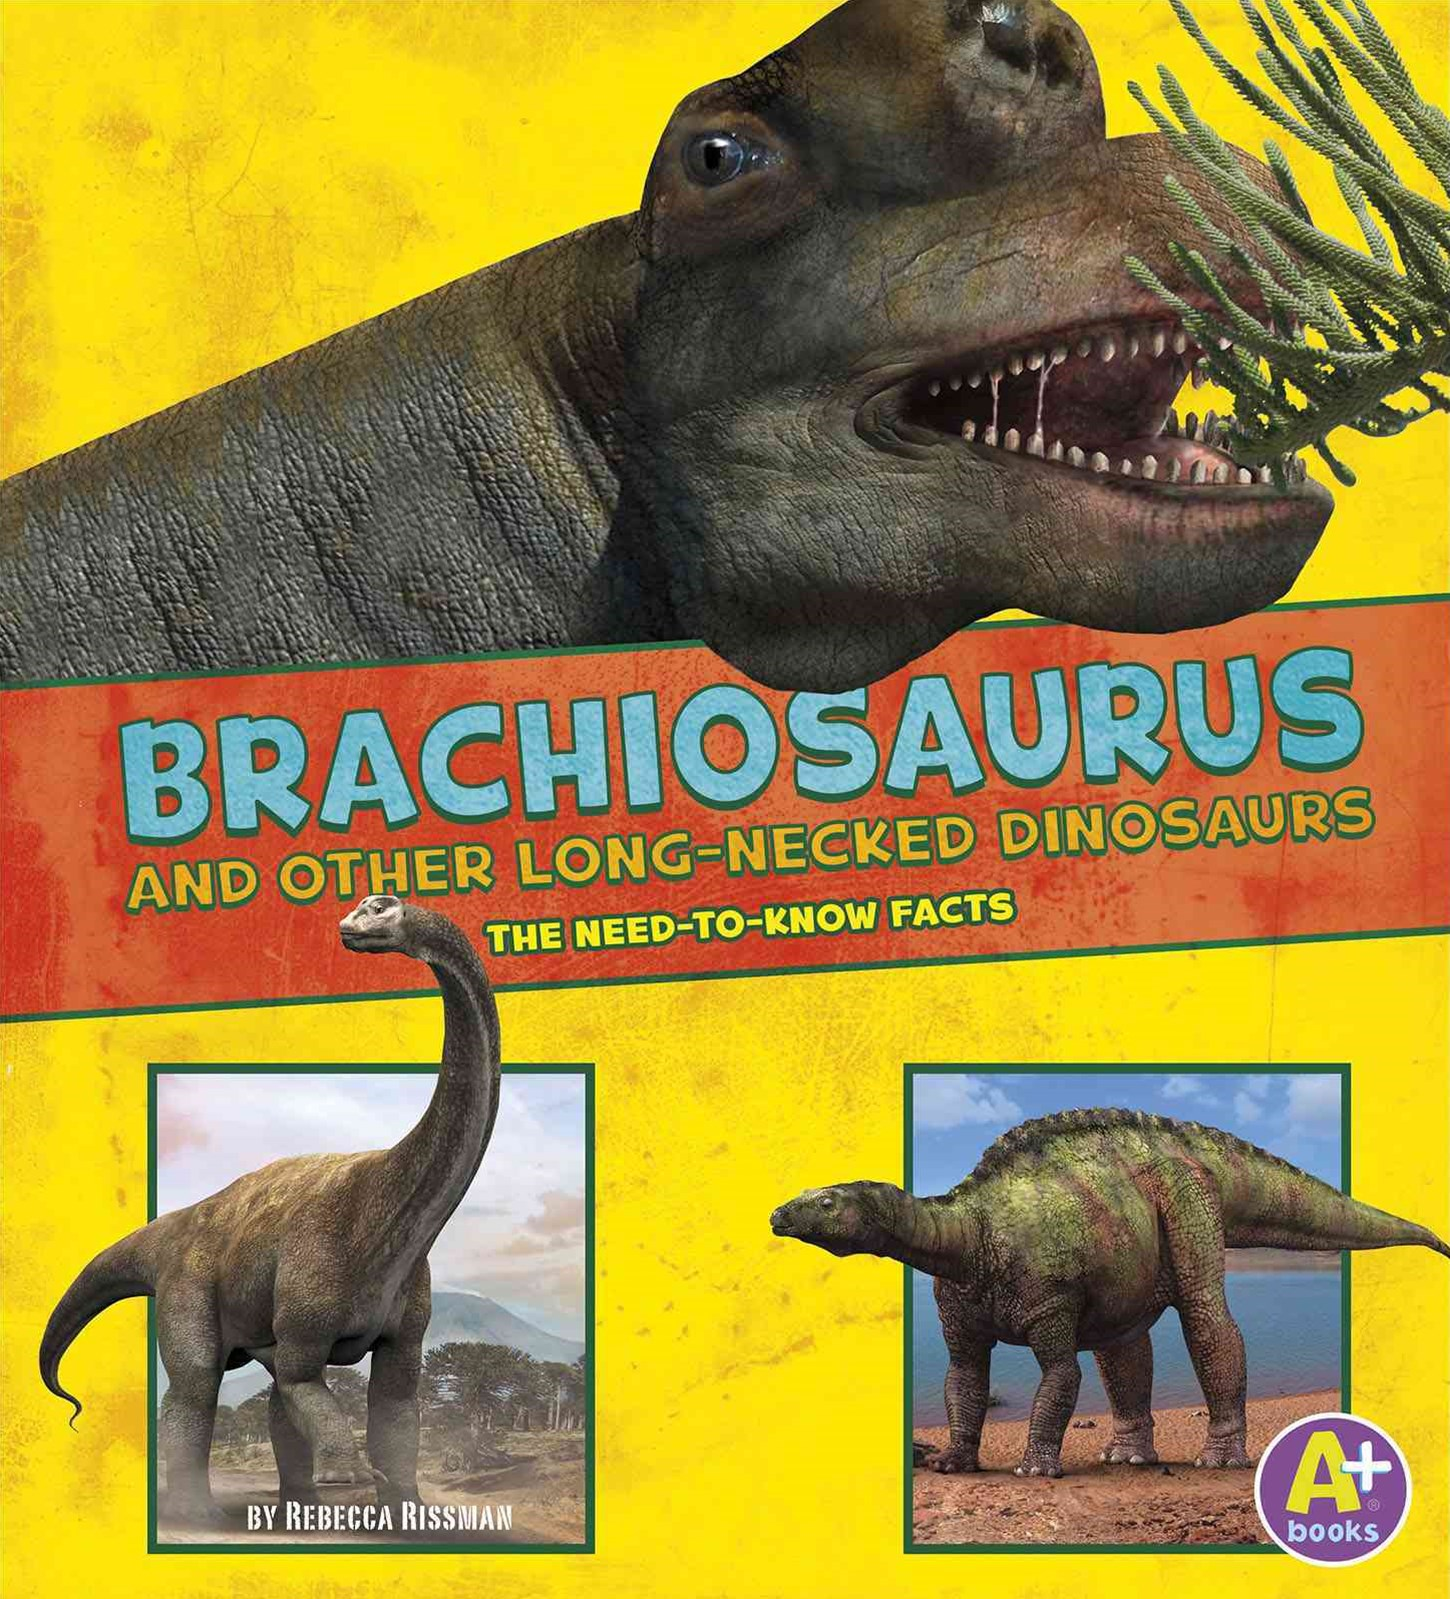 Brachiosaurus and Other Big Long-Necked Dinosaurs